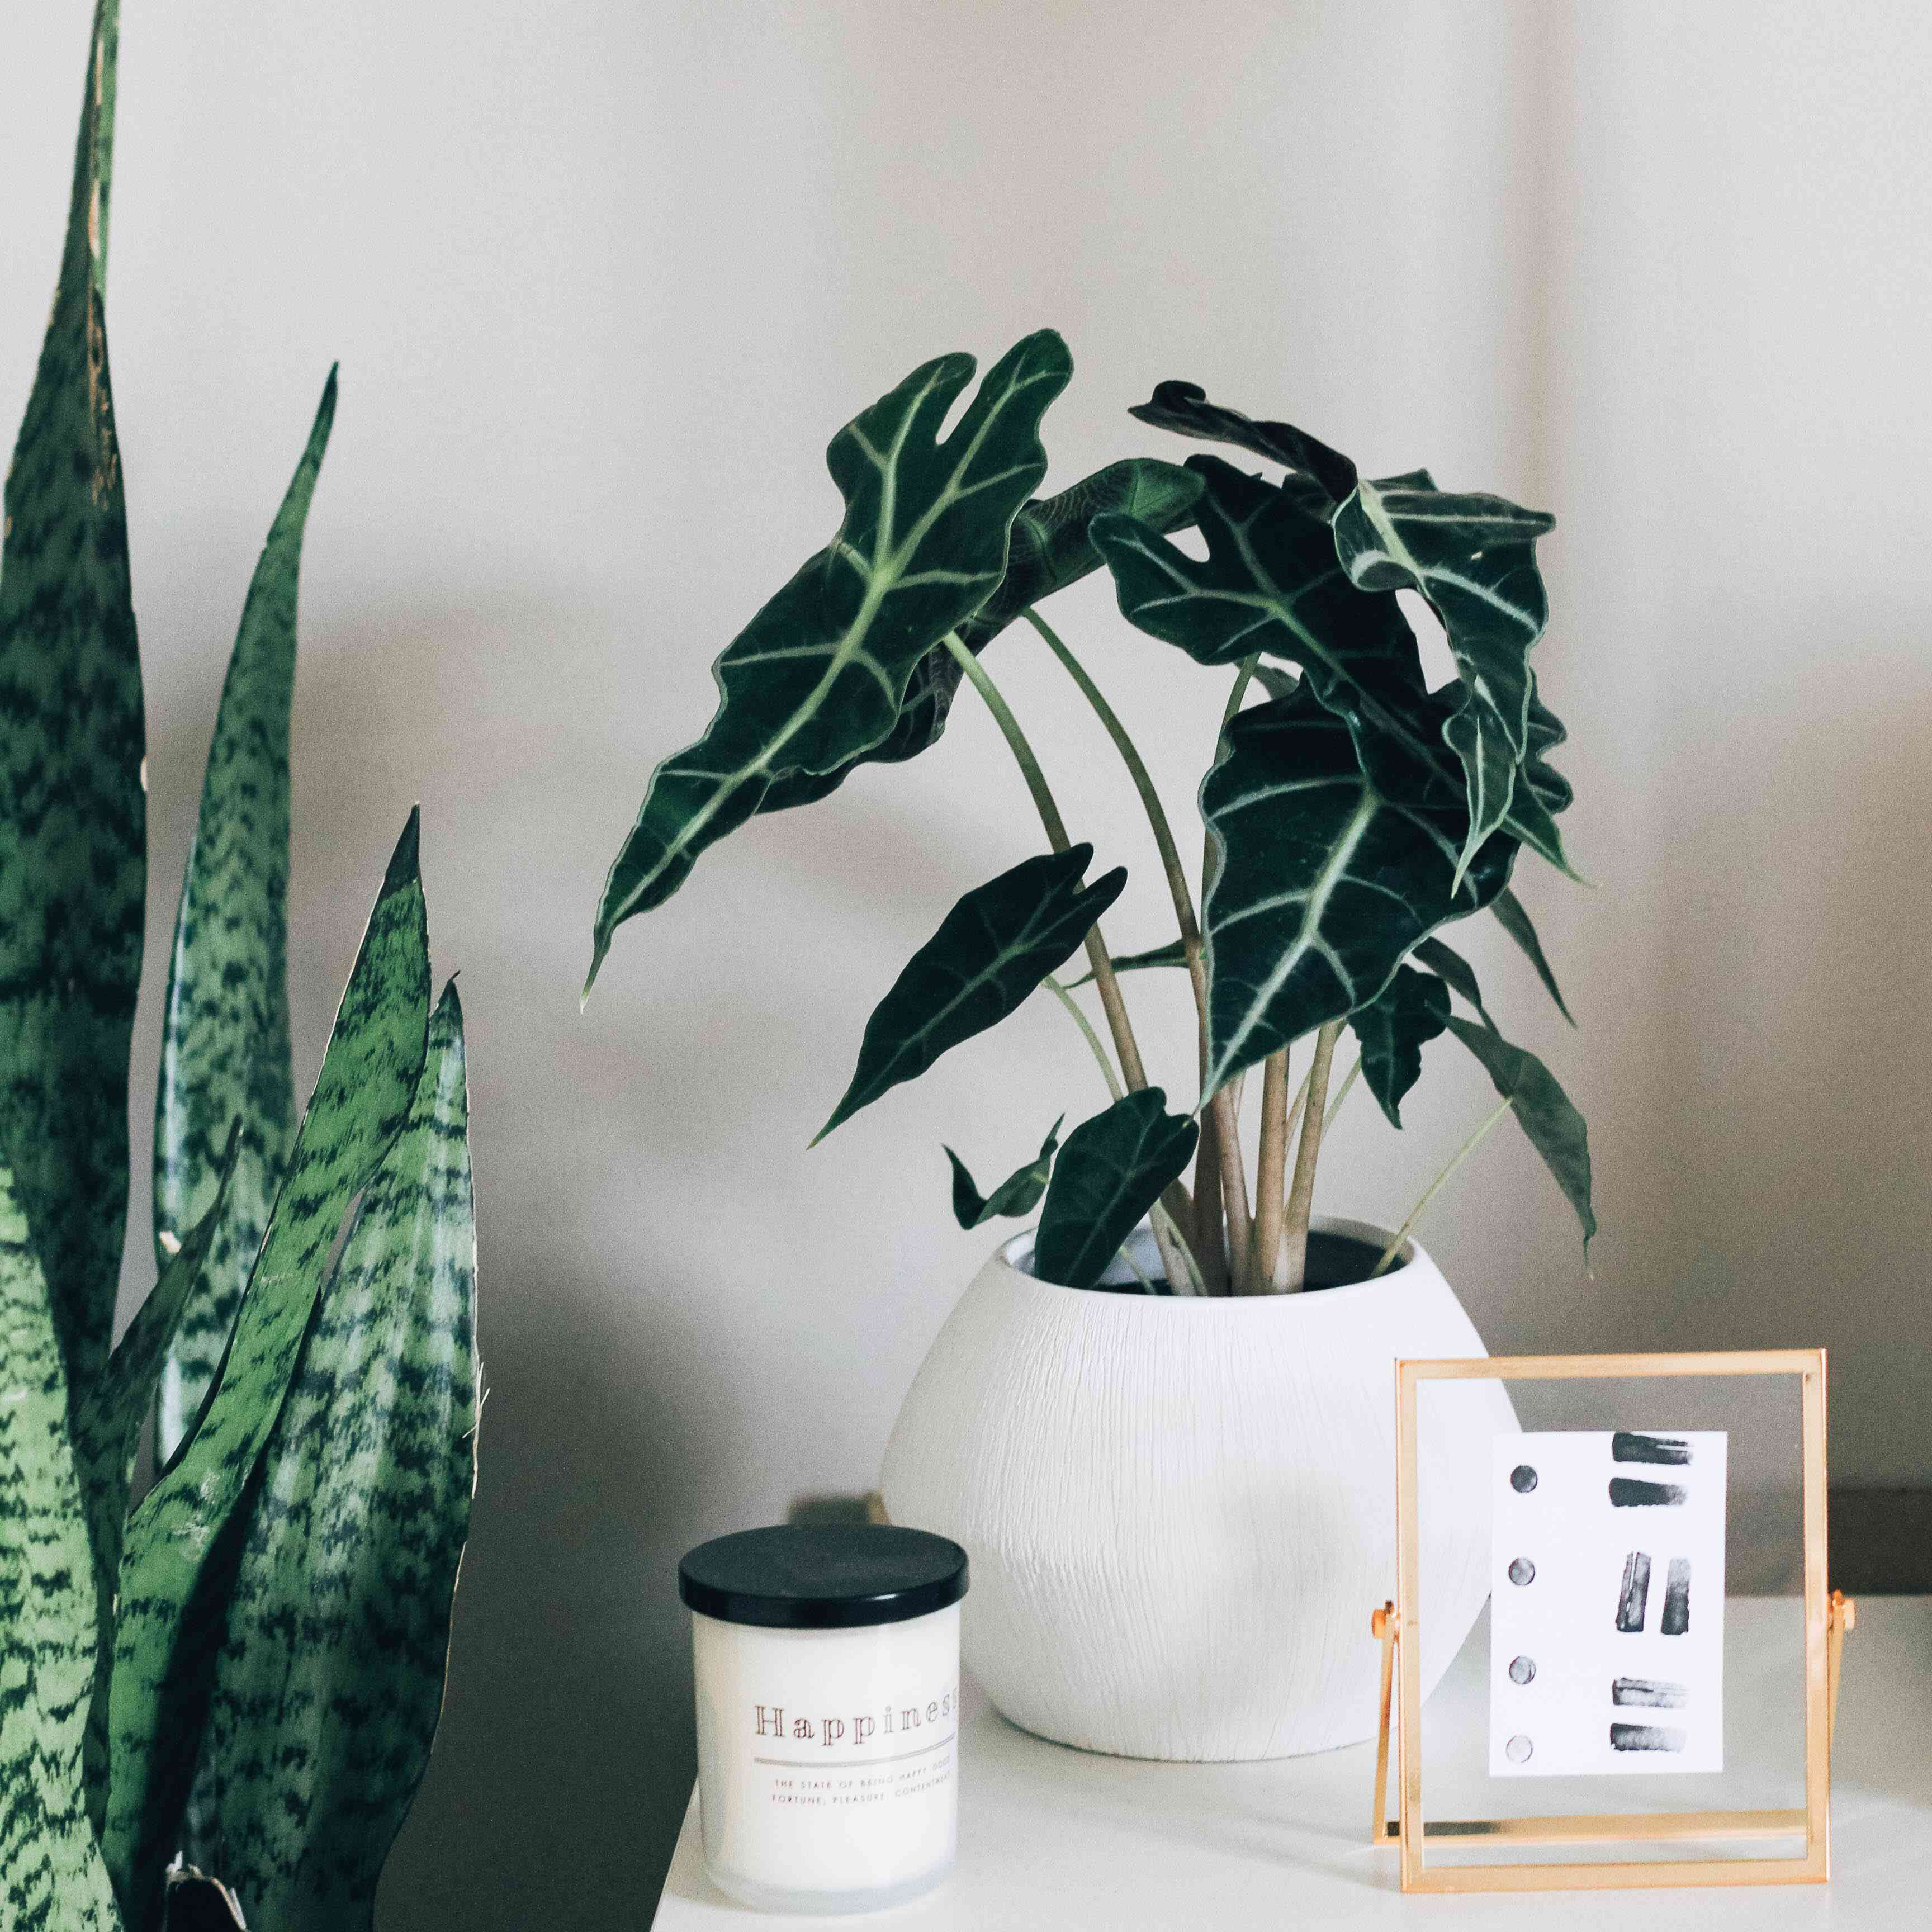 white and wood furniture with two plants and accessories